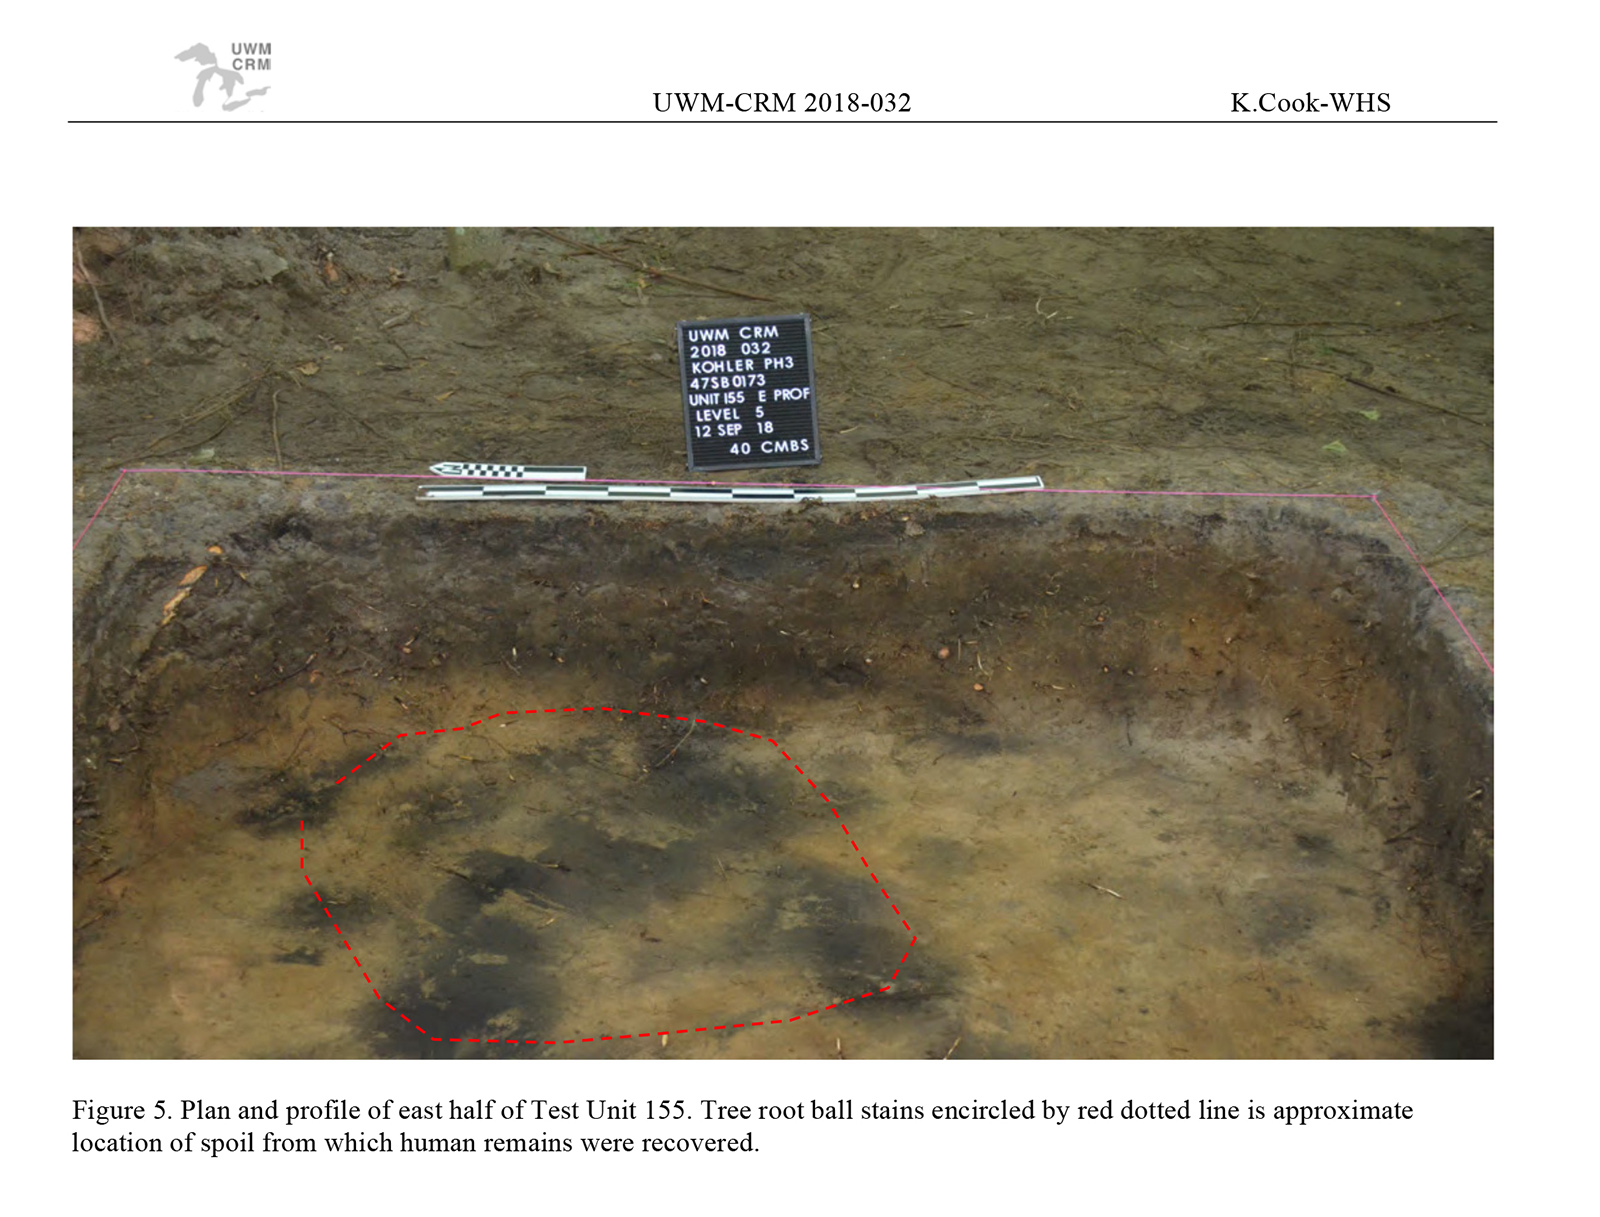 A page from a report showing an excavation site where human remains were found